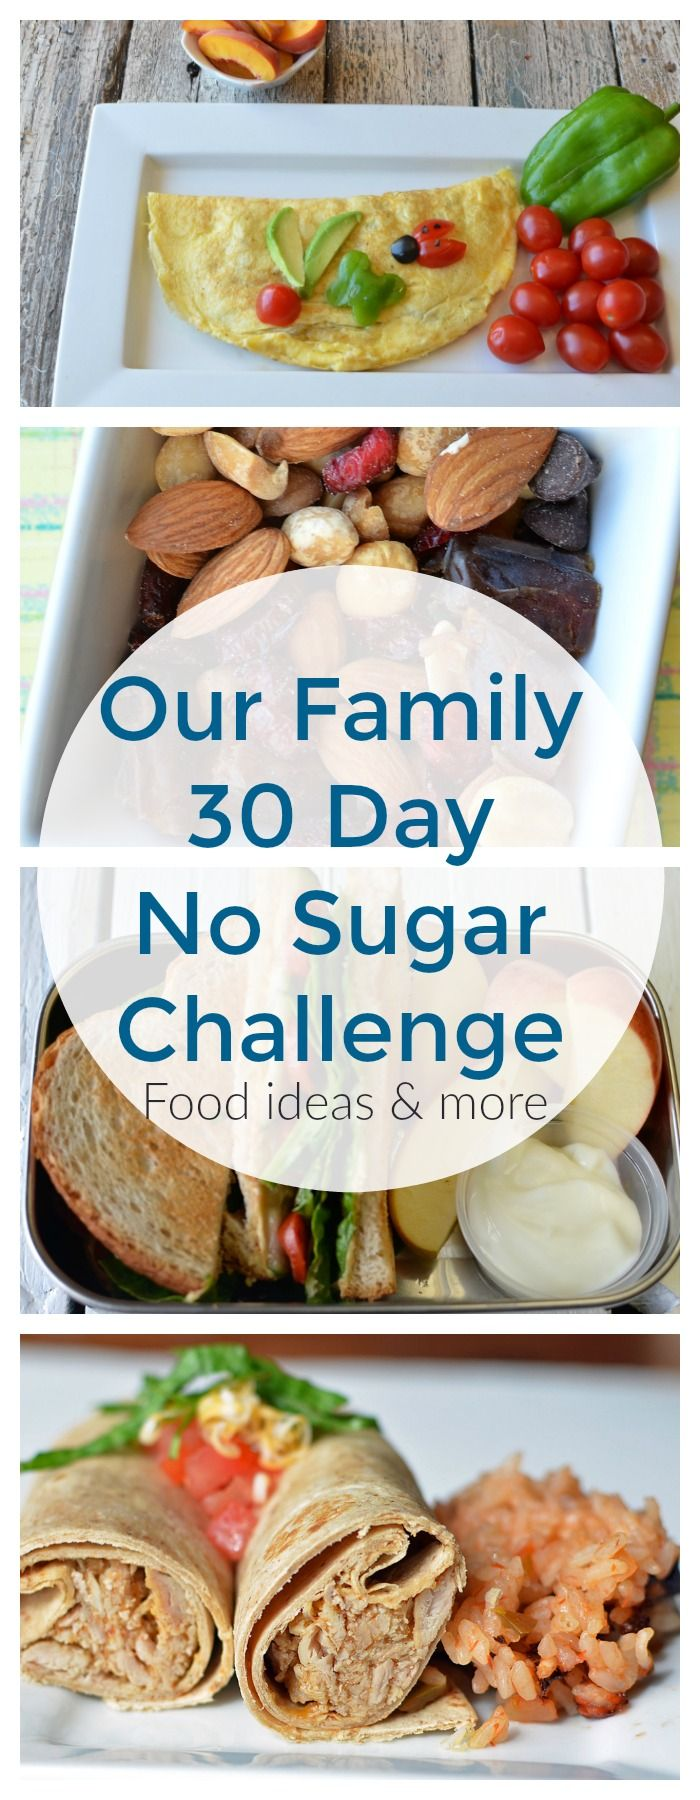 30 Day No Sugar Family Challenge with Food Ideas